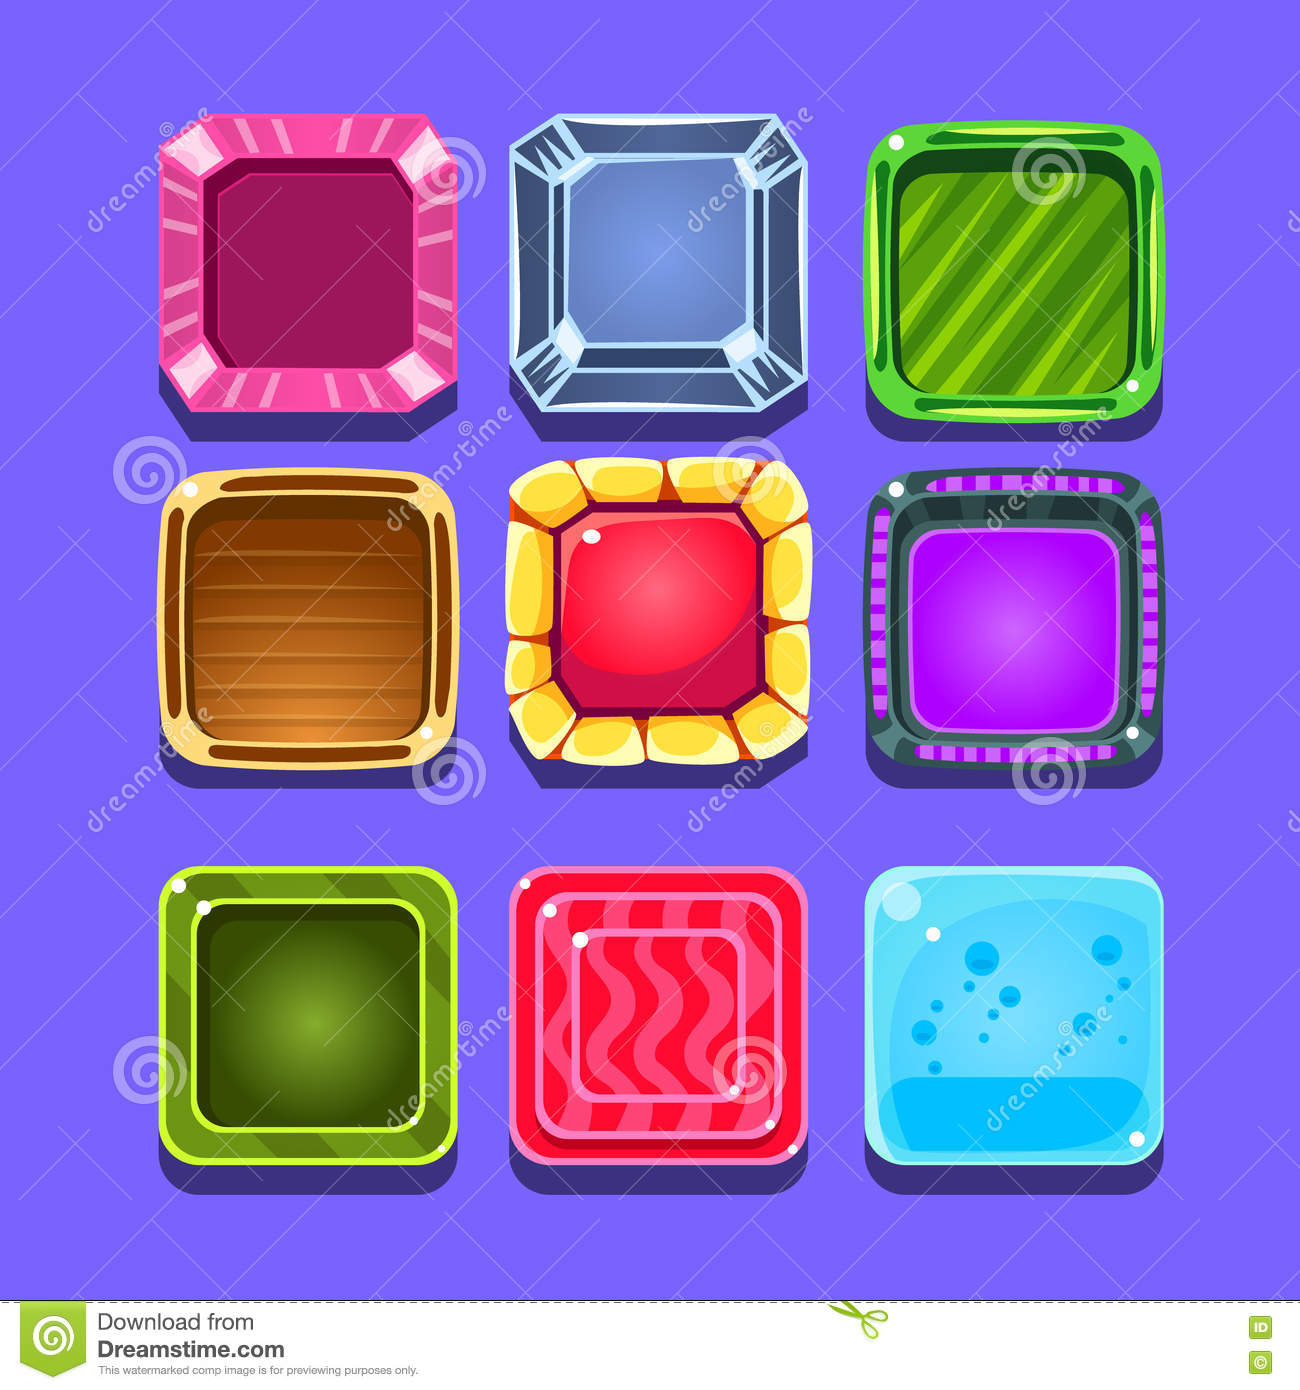 Colorful Gems Flash Game Element Templates Design Set With Square ...